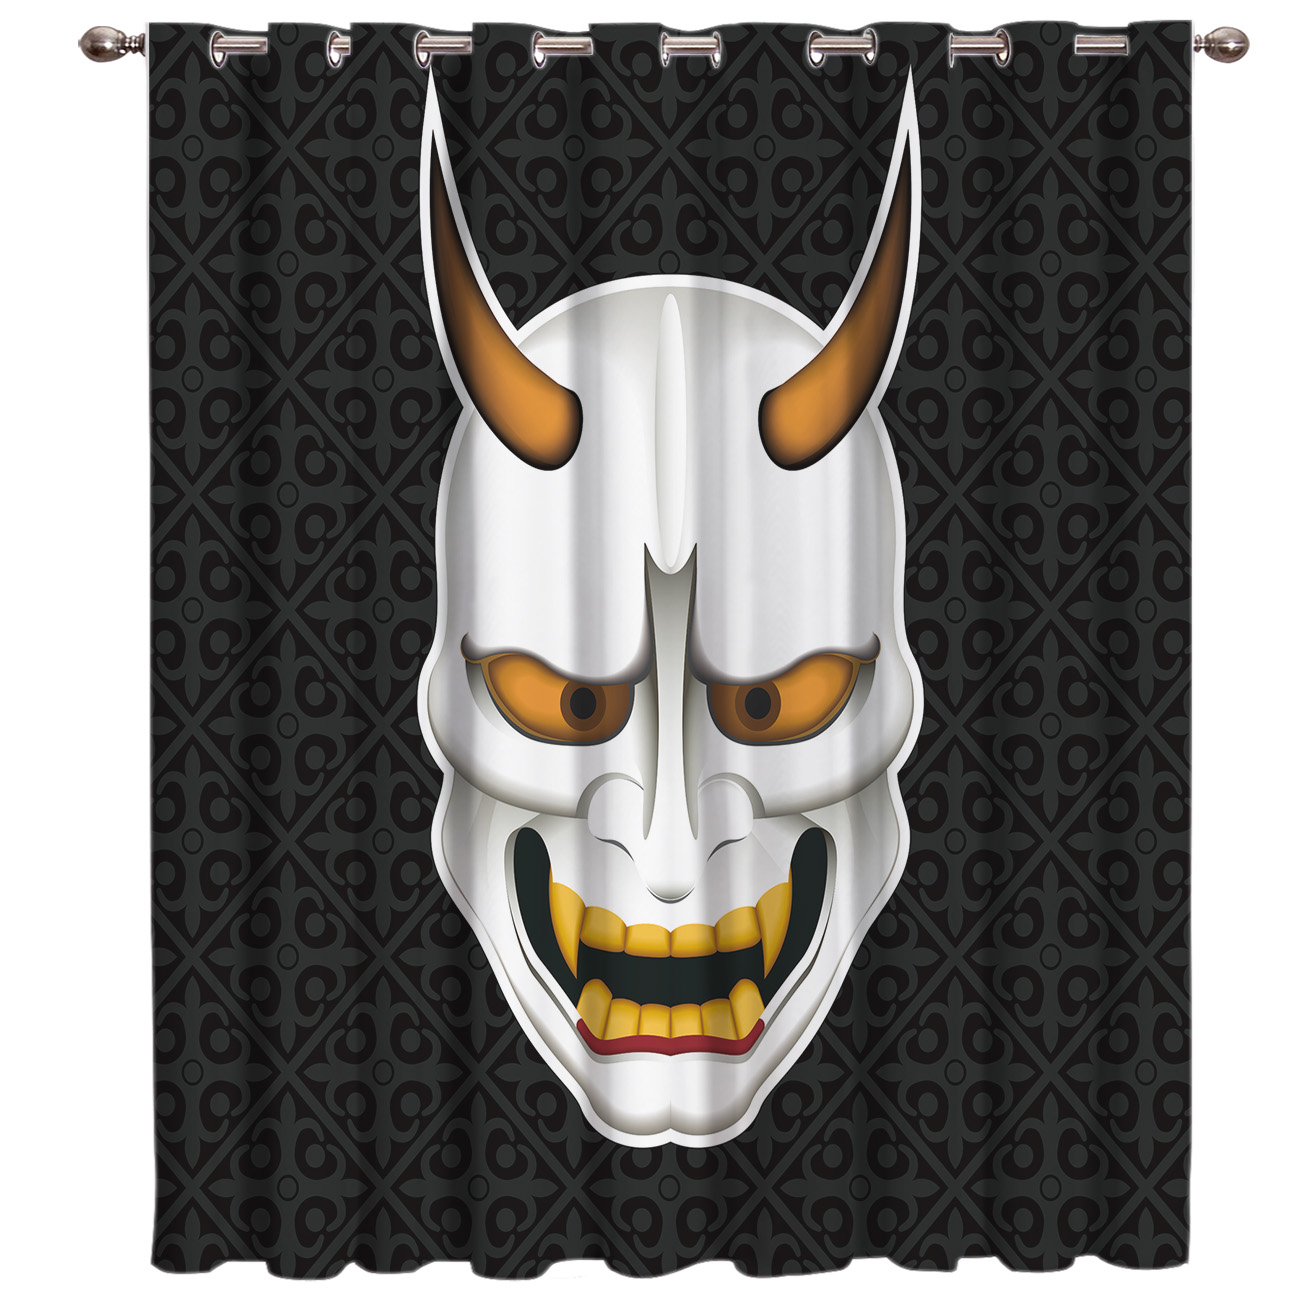 Japanese Samurai Mask Window Treatments Curtains Valance Window Curtains Dark Outdoor Bedroom Kitchen Fabric Decor Kids Curtain